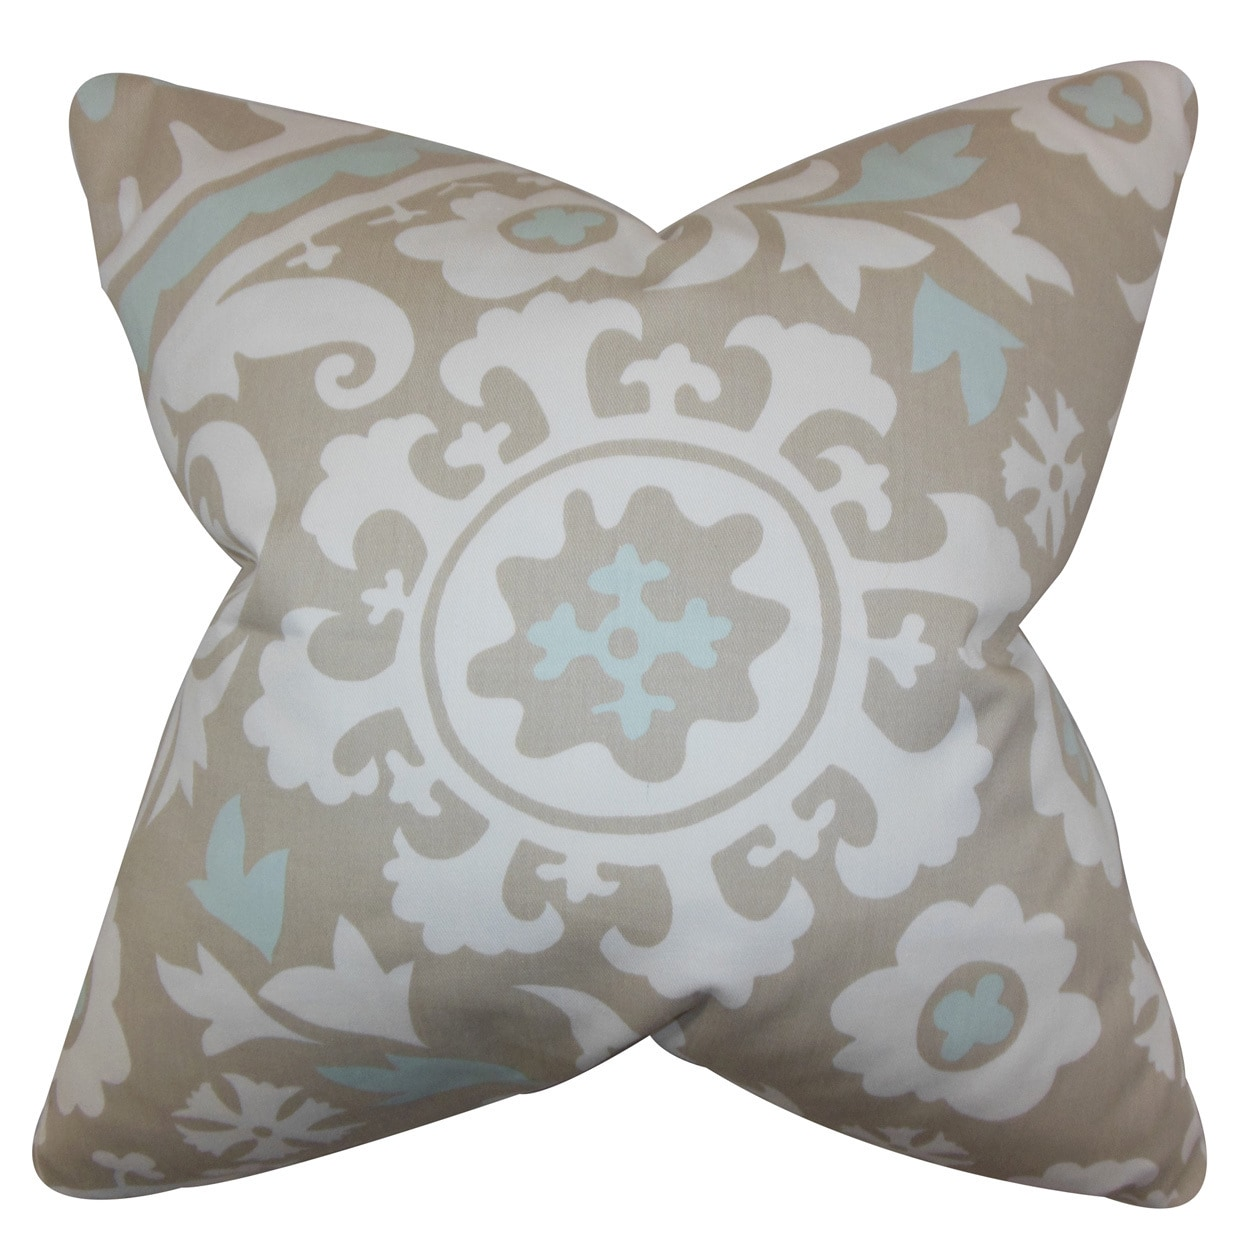 The Pillow Collection Wella Floral 22-inch Down Feather Throw Pillow Powder Blue